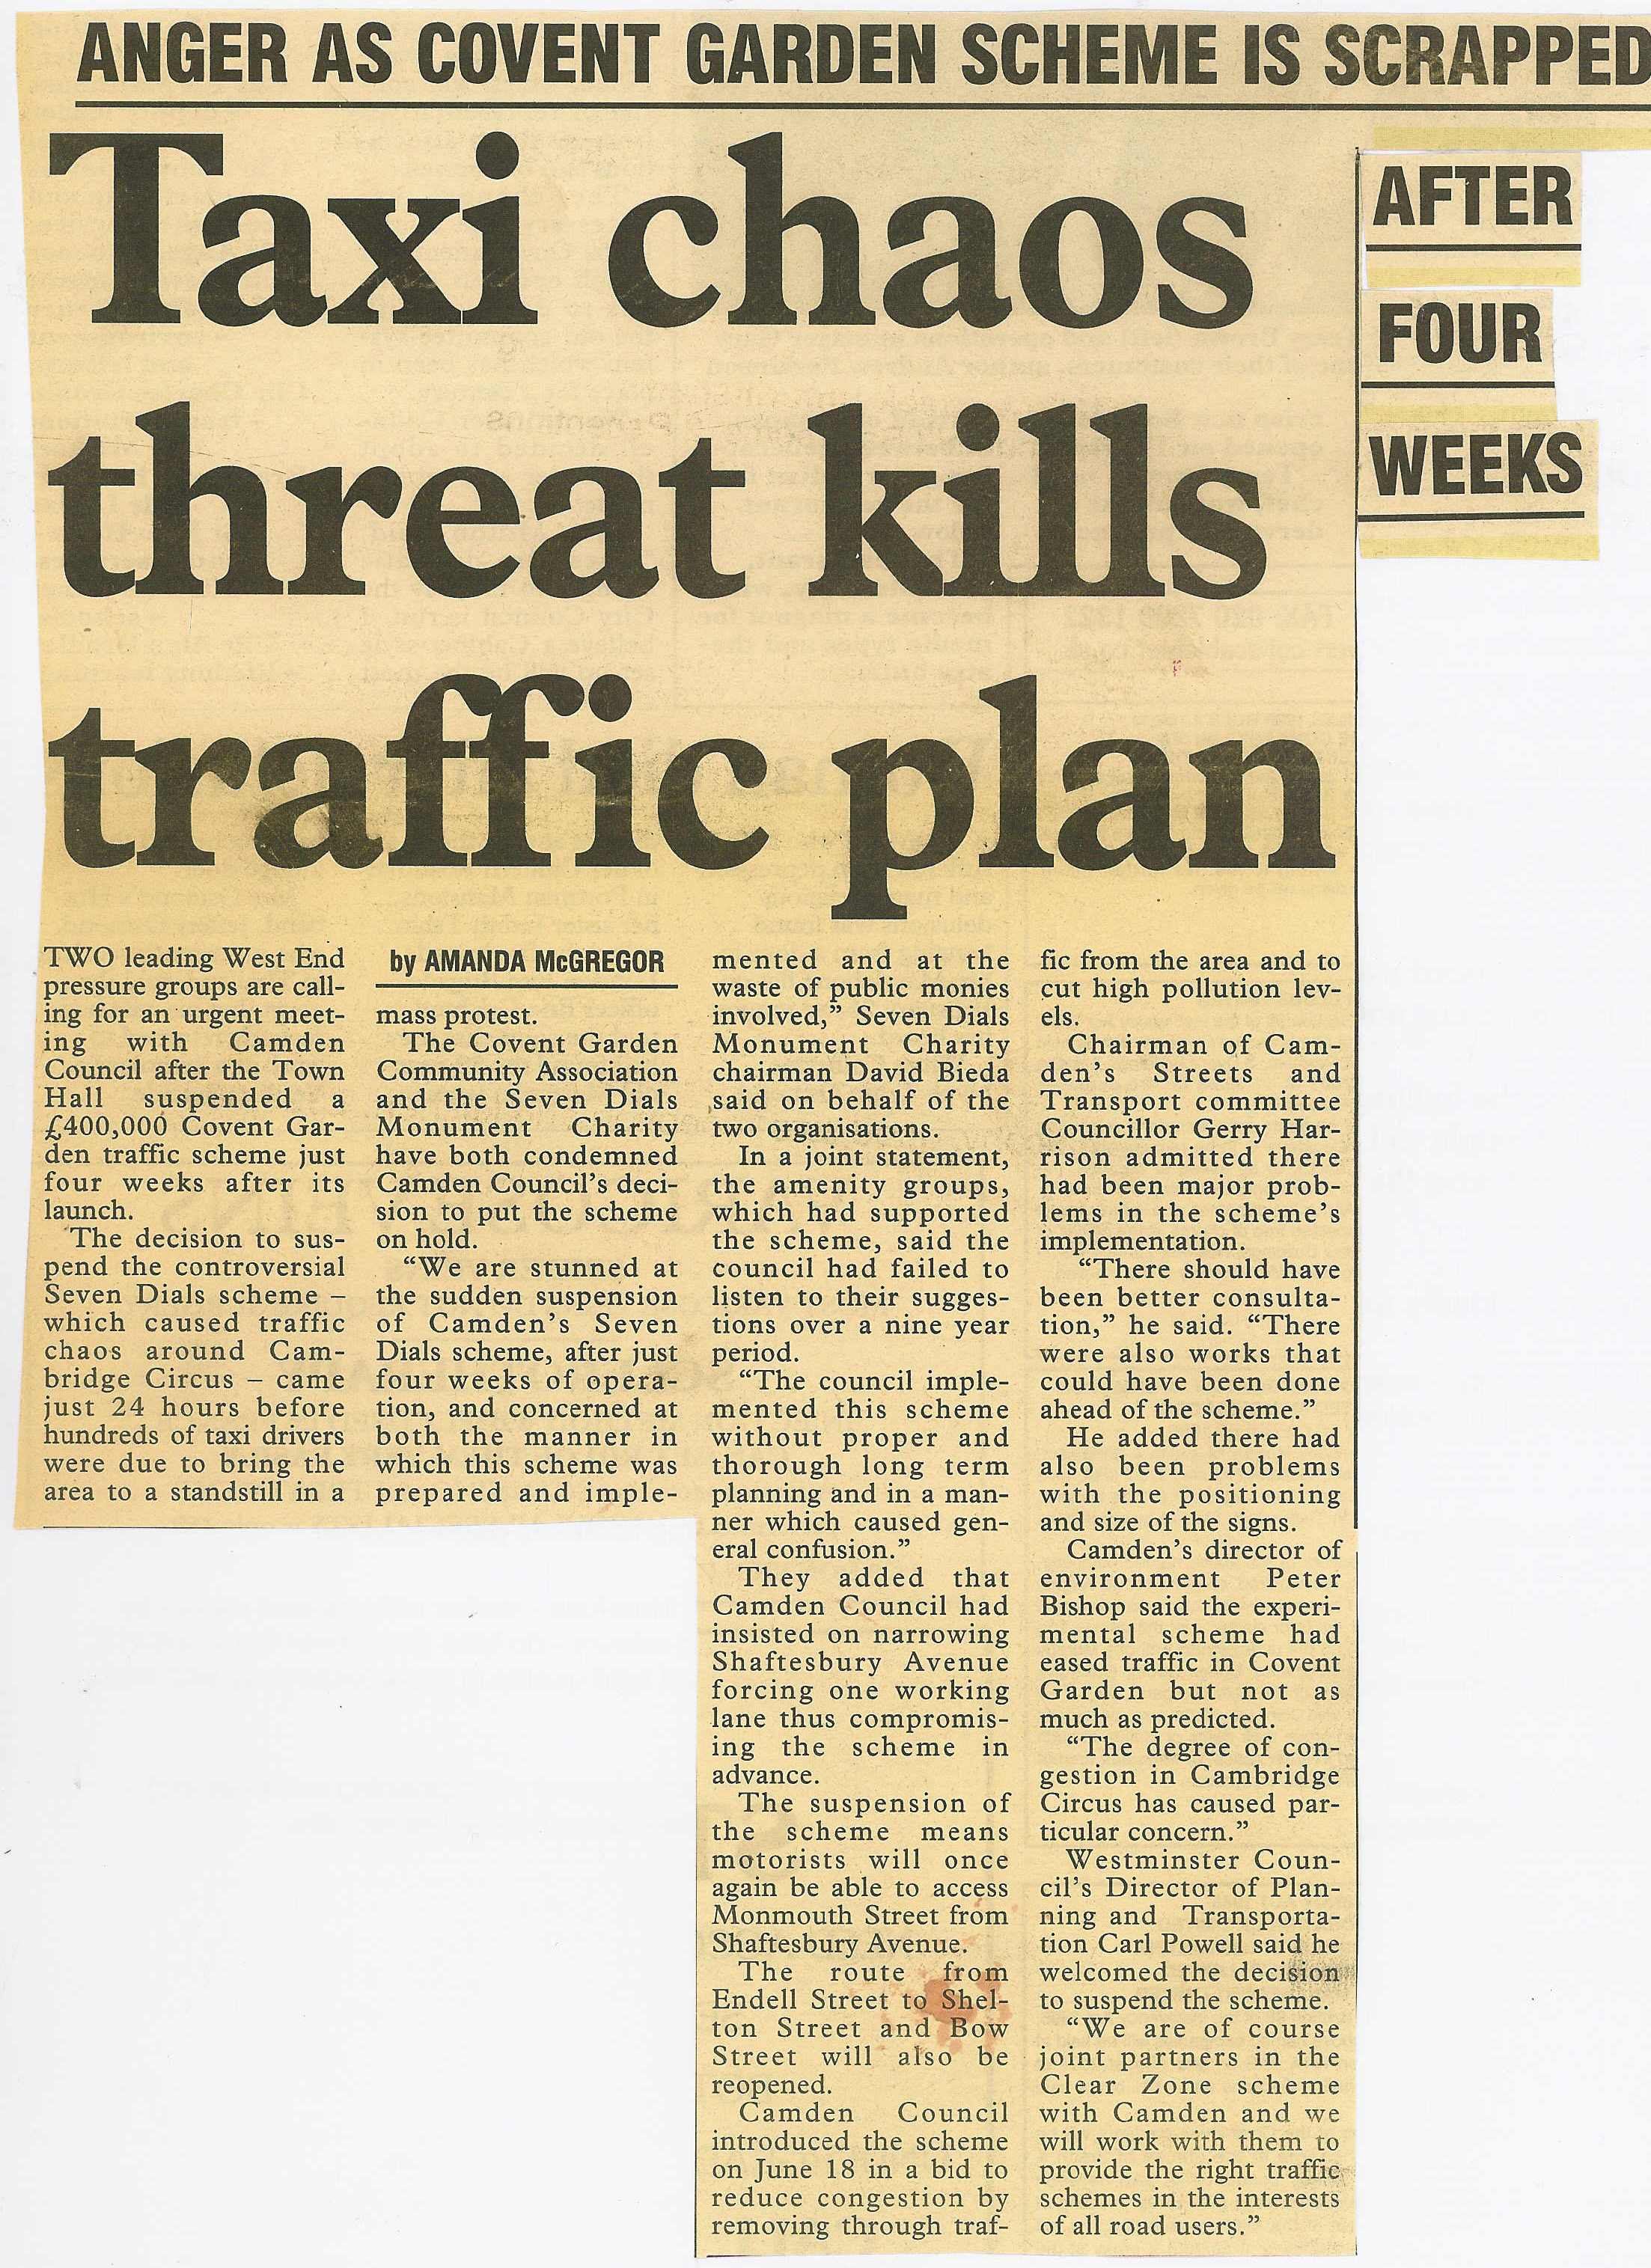 27 July 1991 – West End Extra: Taxi chaos threat kills traffic plan, anger as Covent Garden scheme is scrapped.